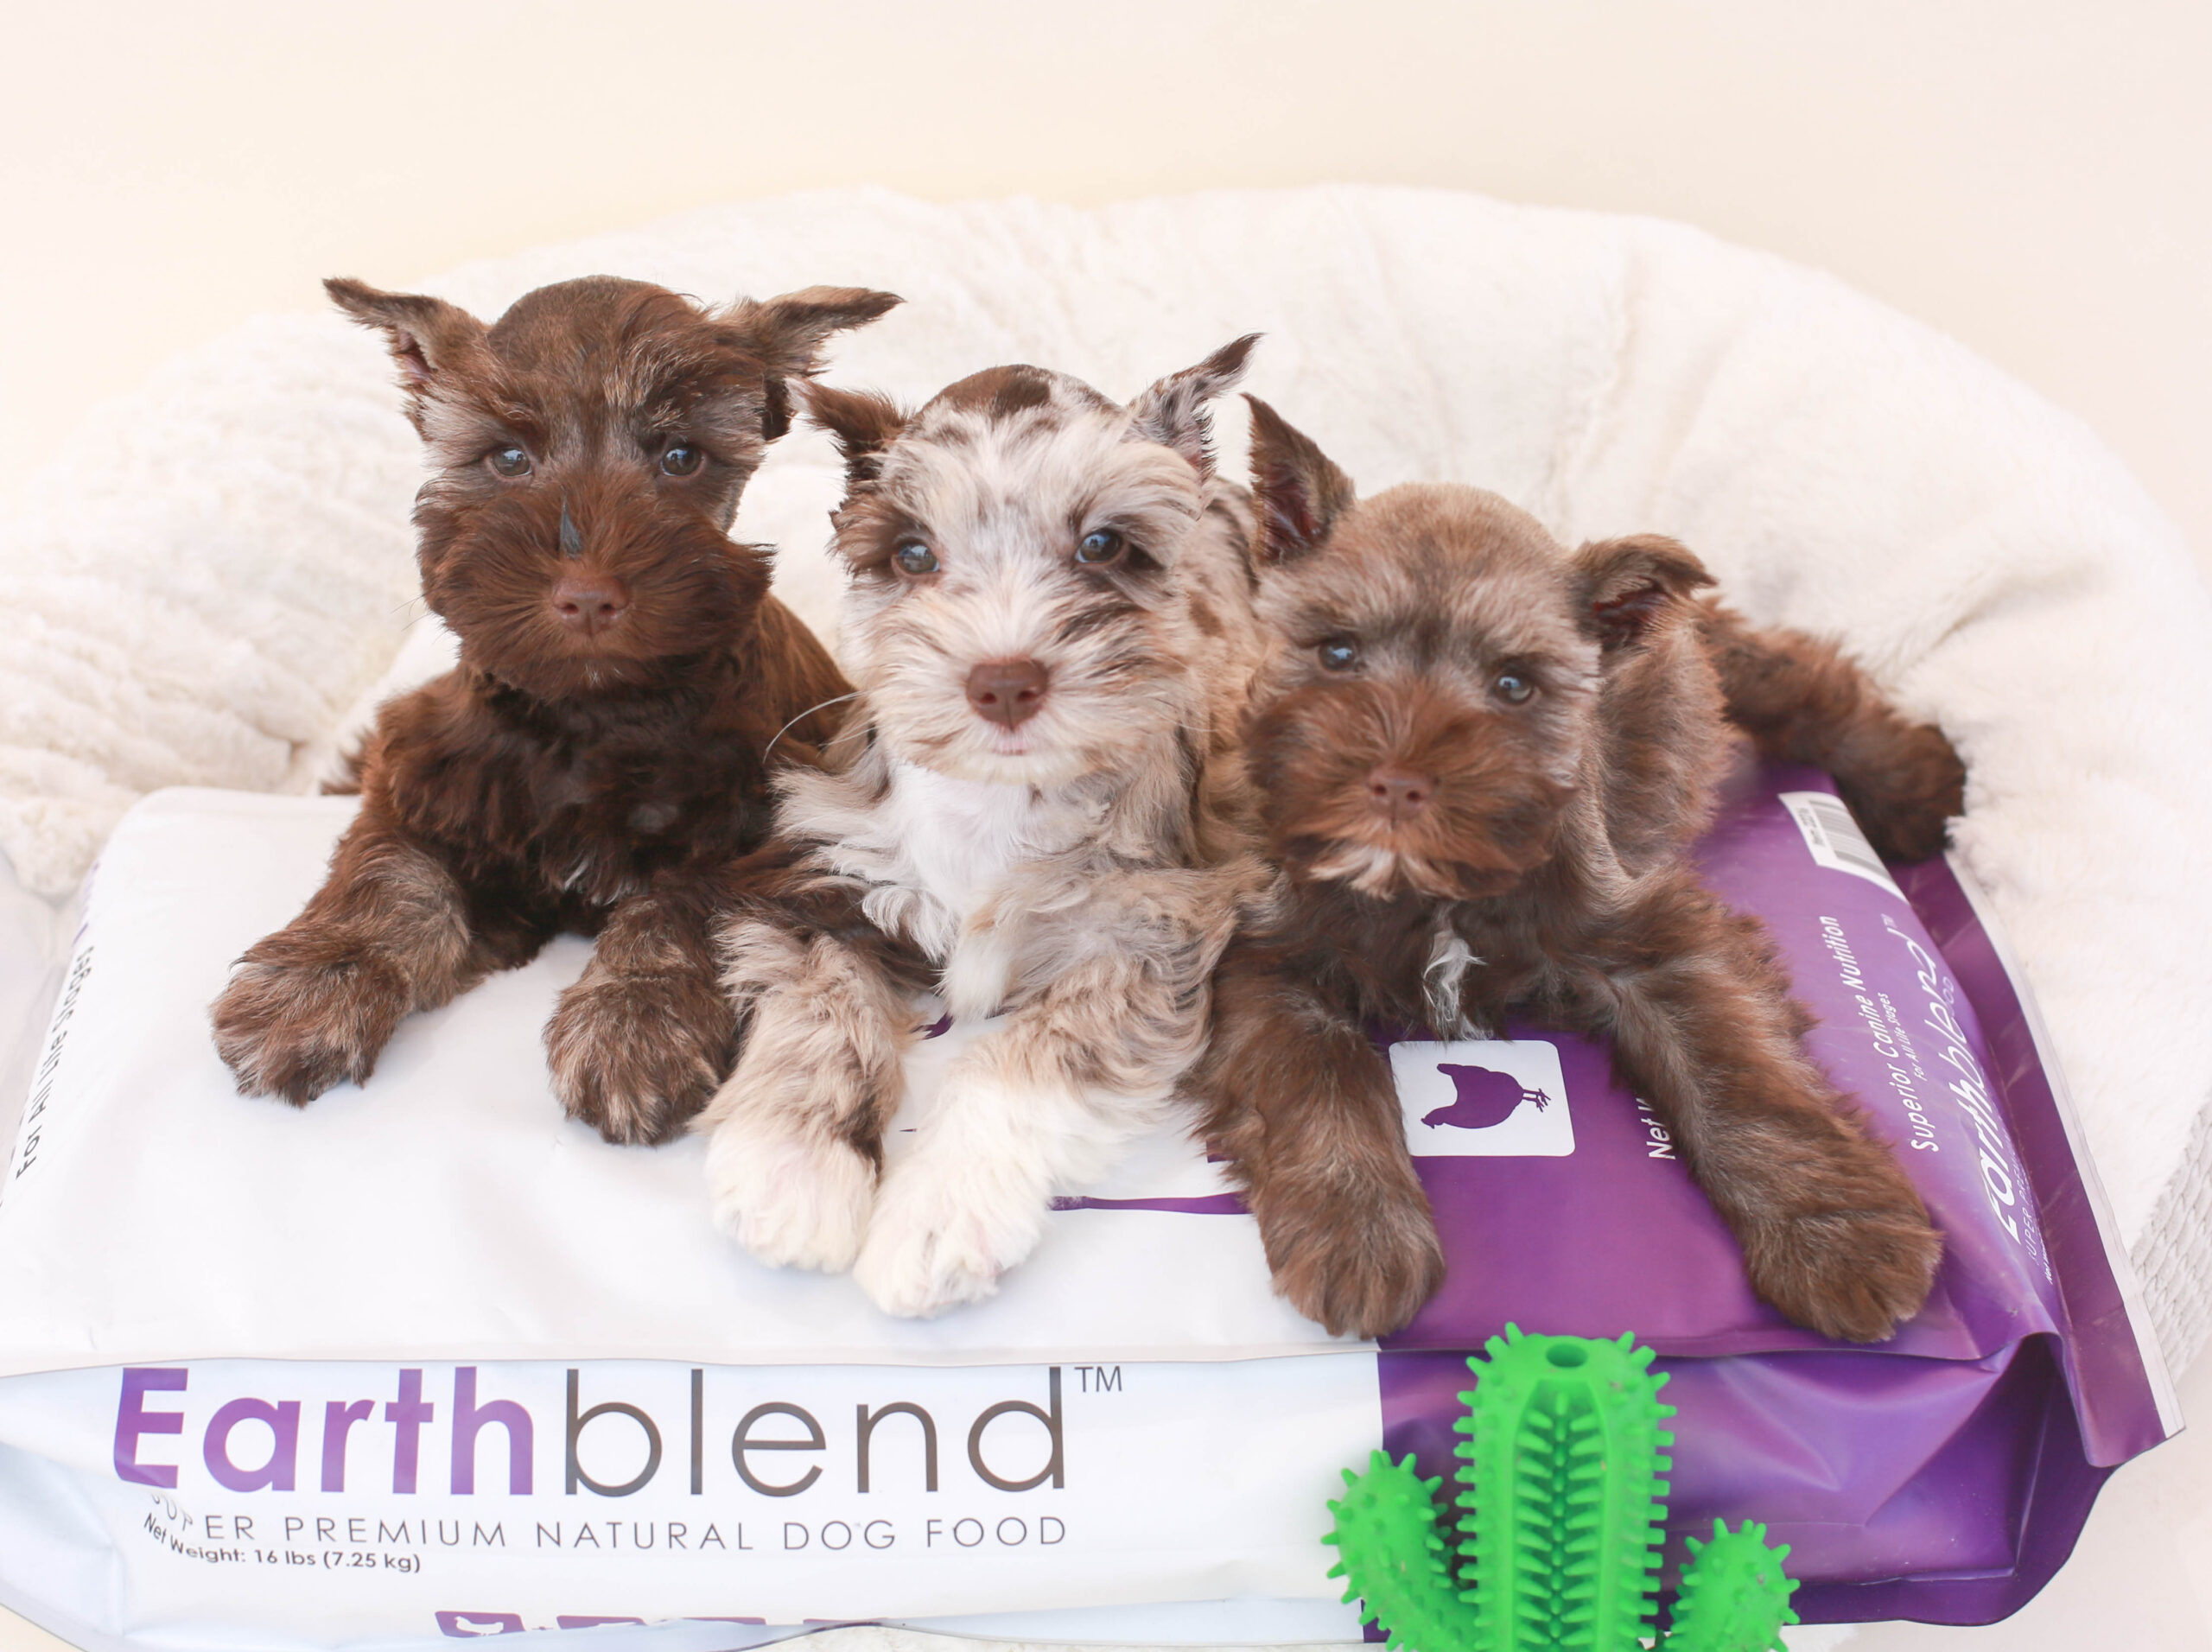 Schnauzer puppies with Earthblend bag